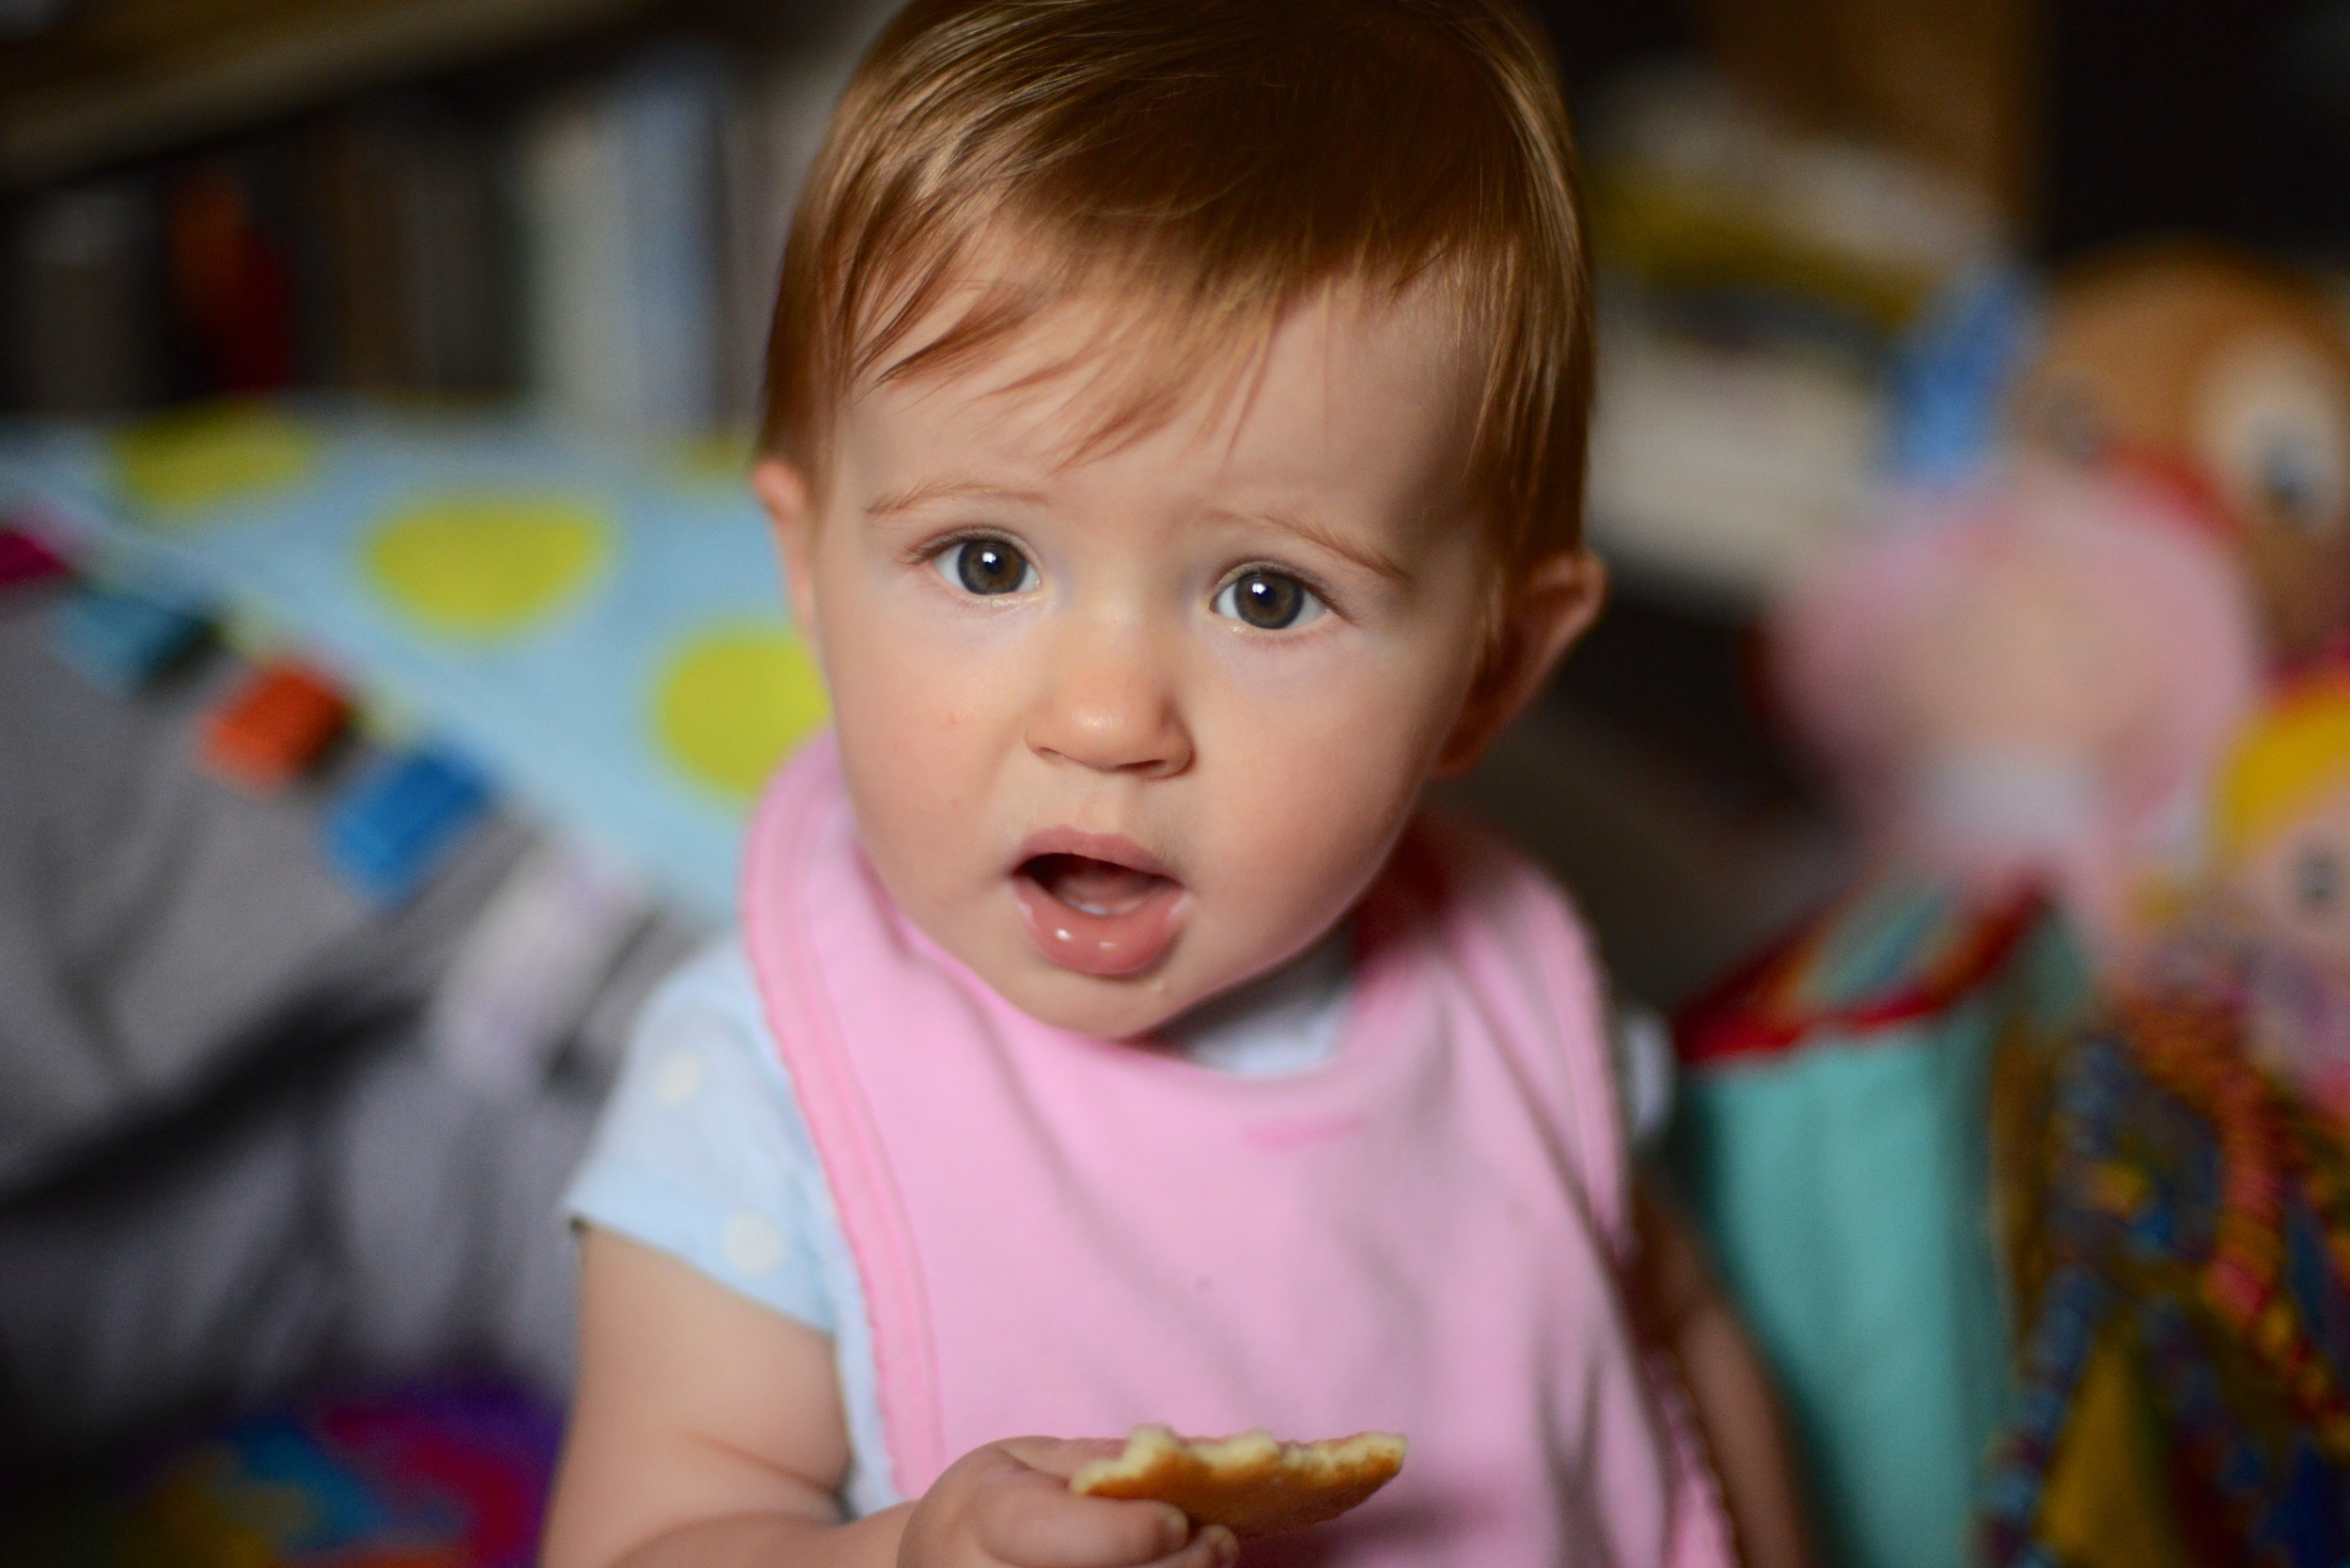 Chowing down on a frozen pancake. Best remedy right now for teething.